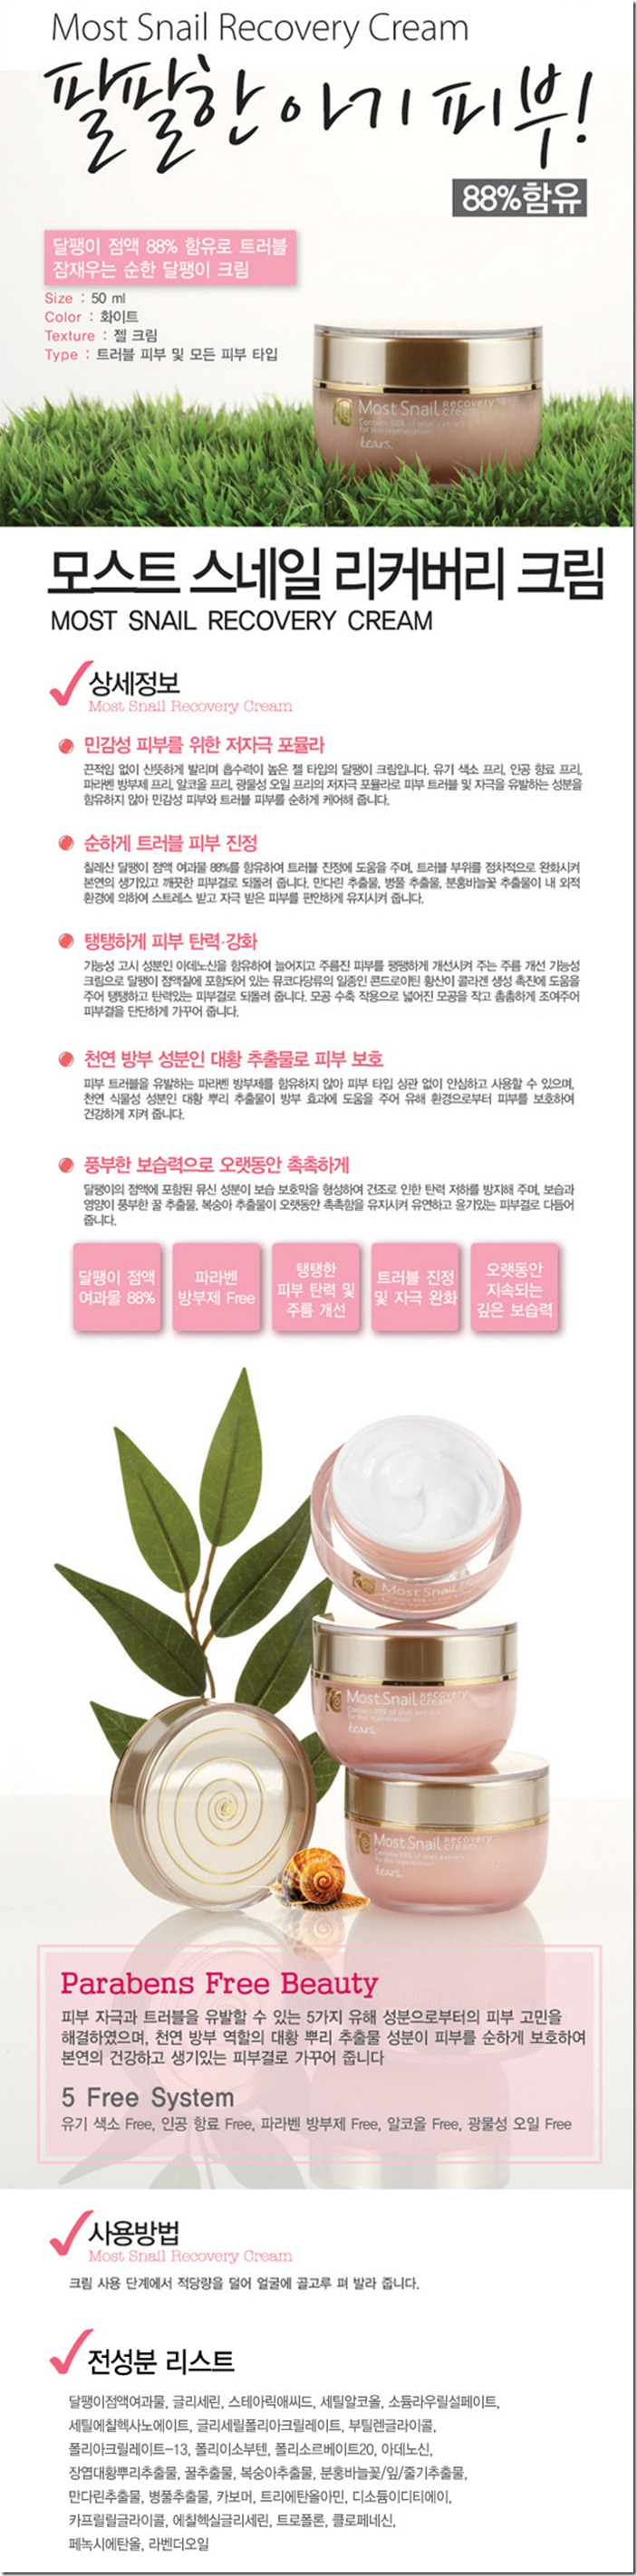 Most20Snail20Cream_600